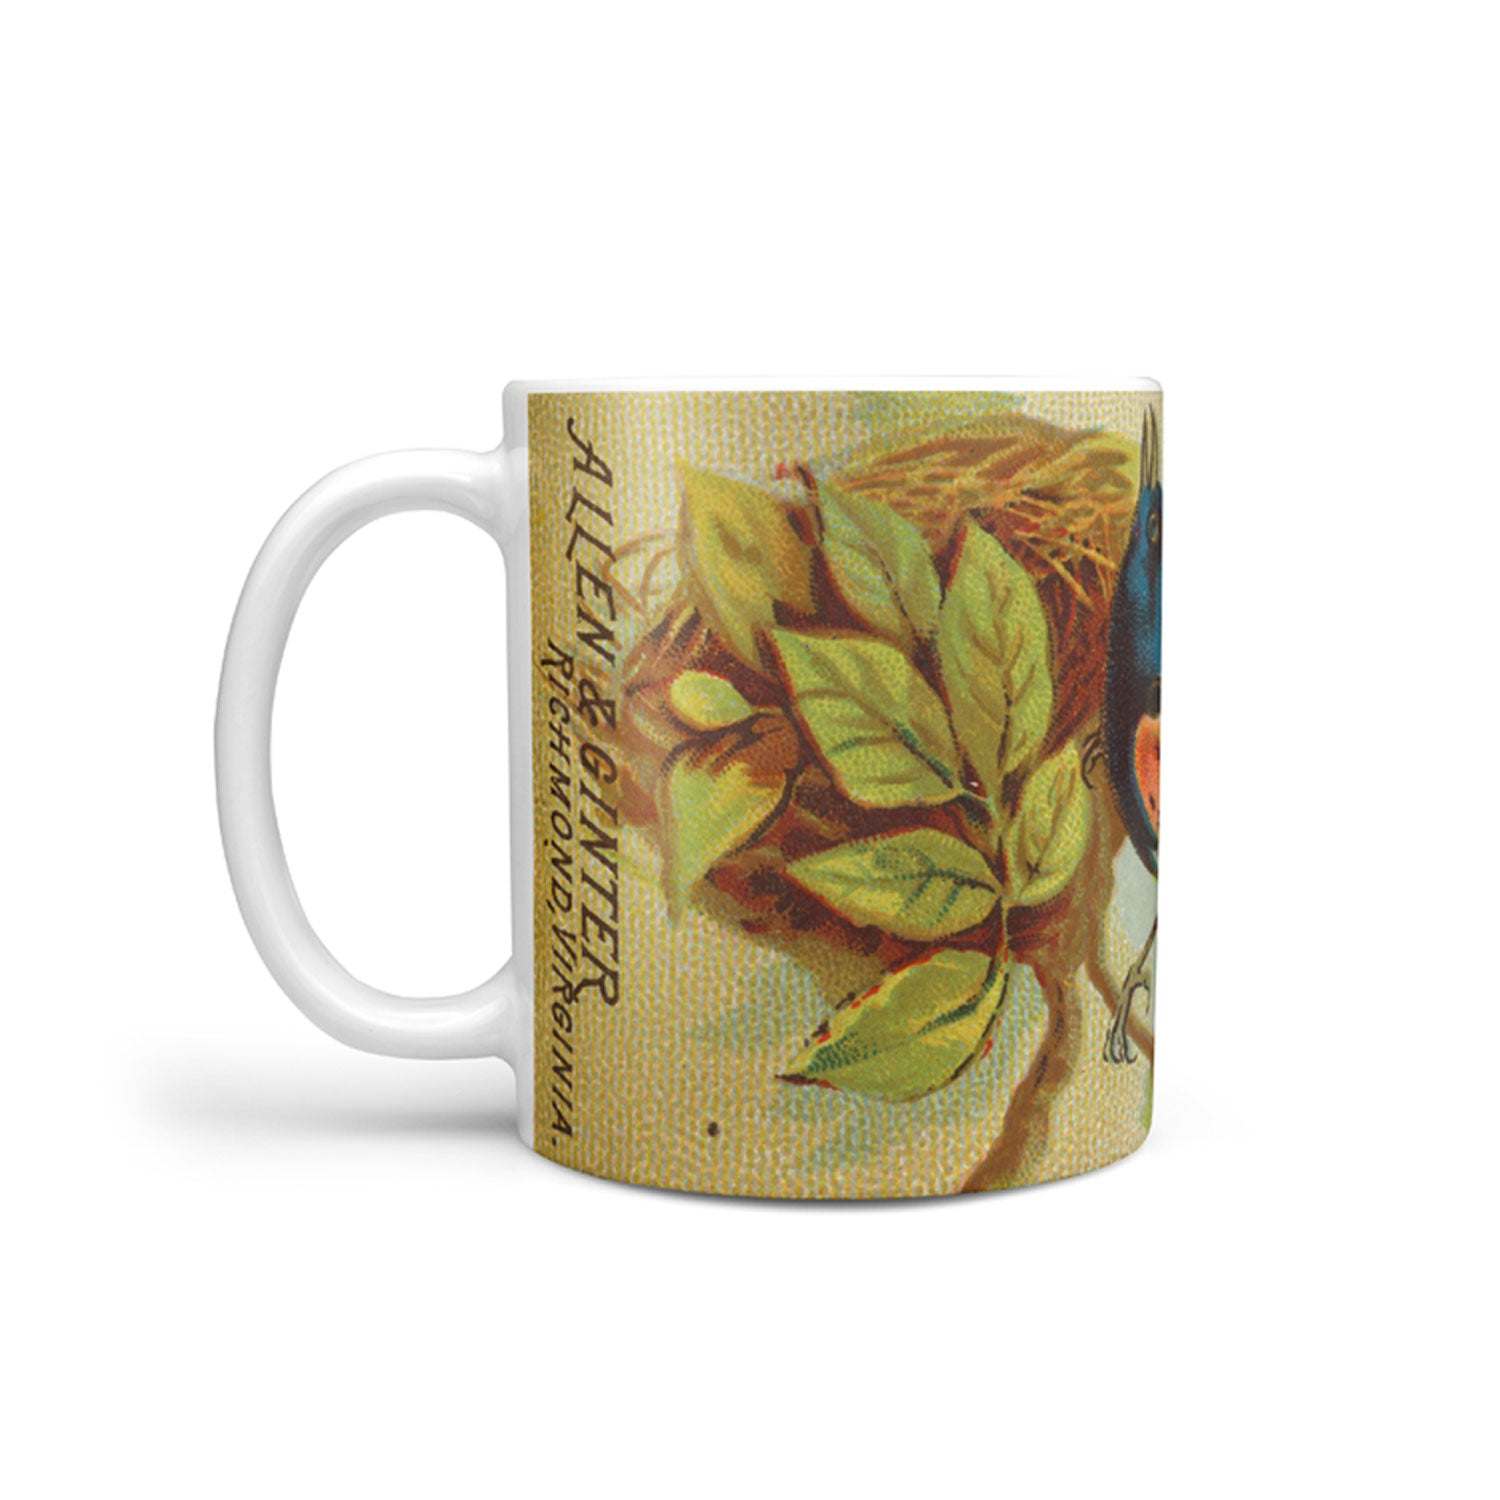 mug with a vintage redstart bird illustration